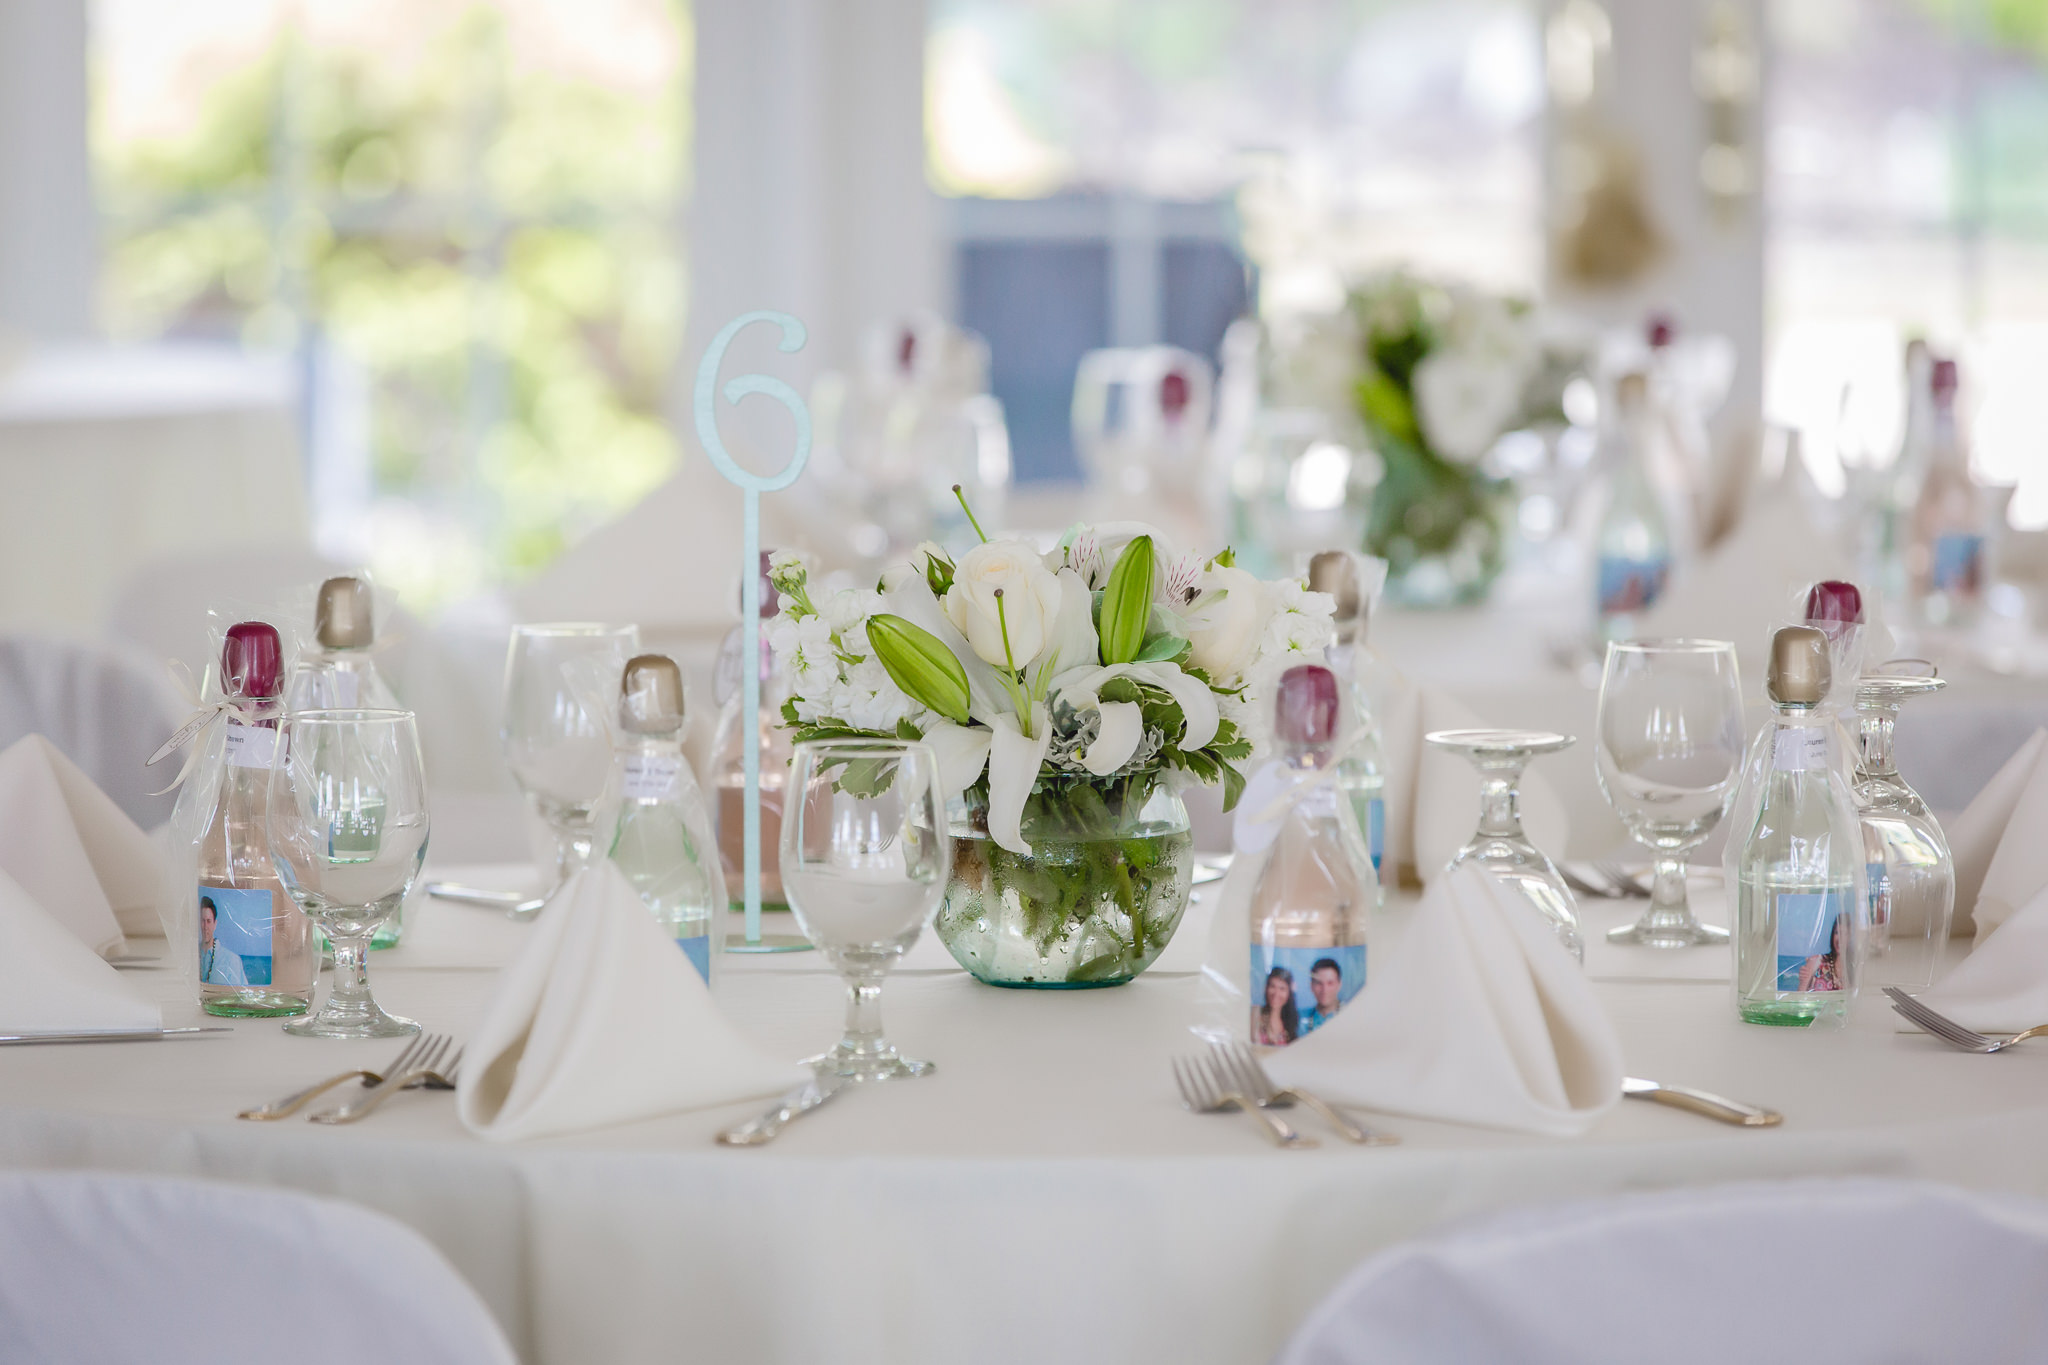 Centerpieces and teal table numbers at a wedding reception at Greystone Fields